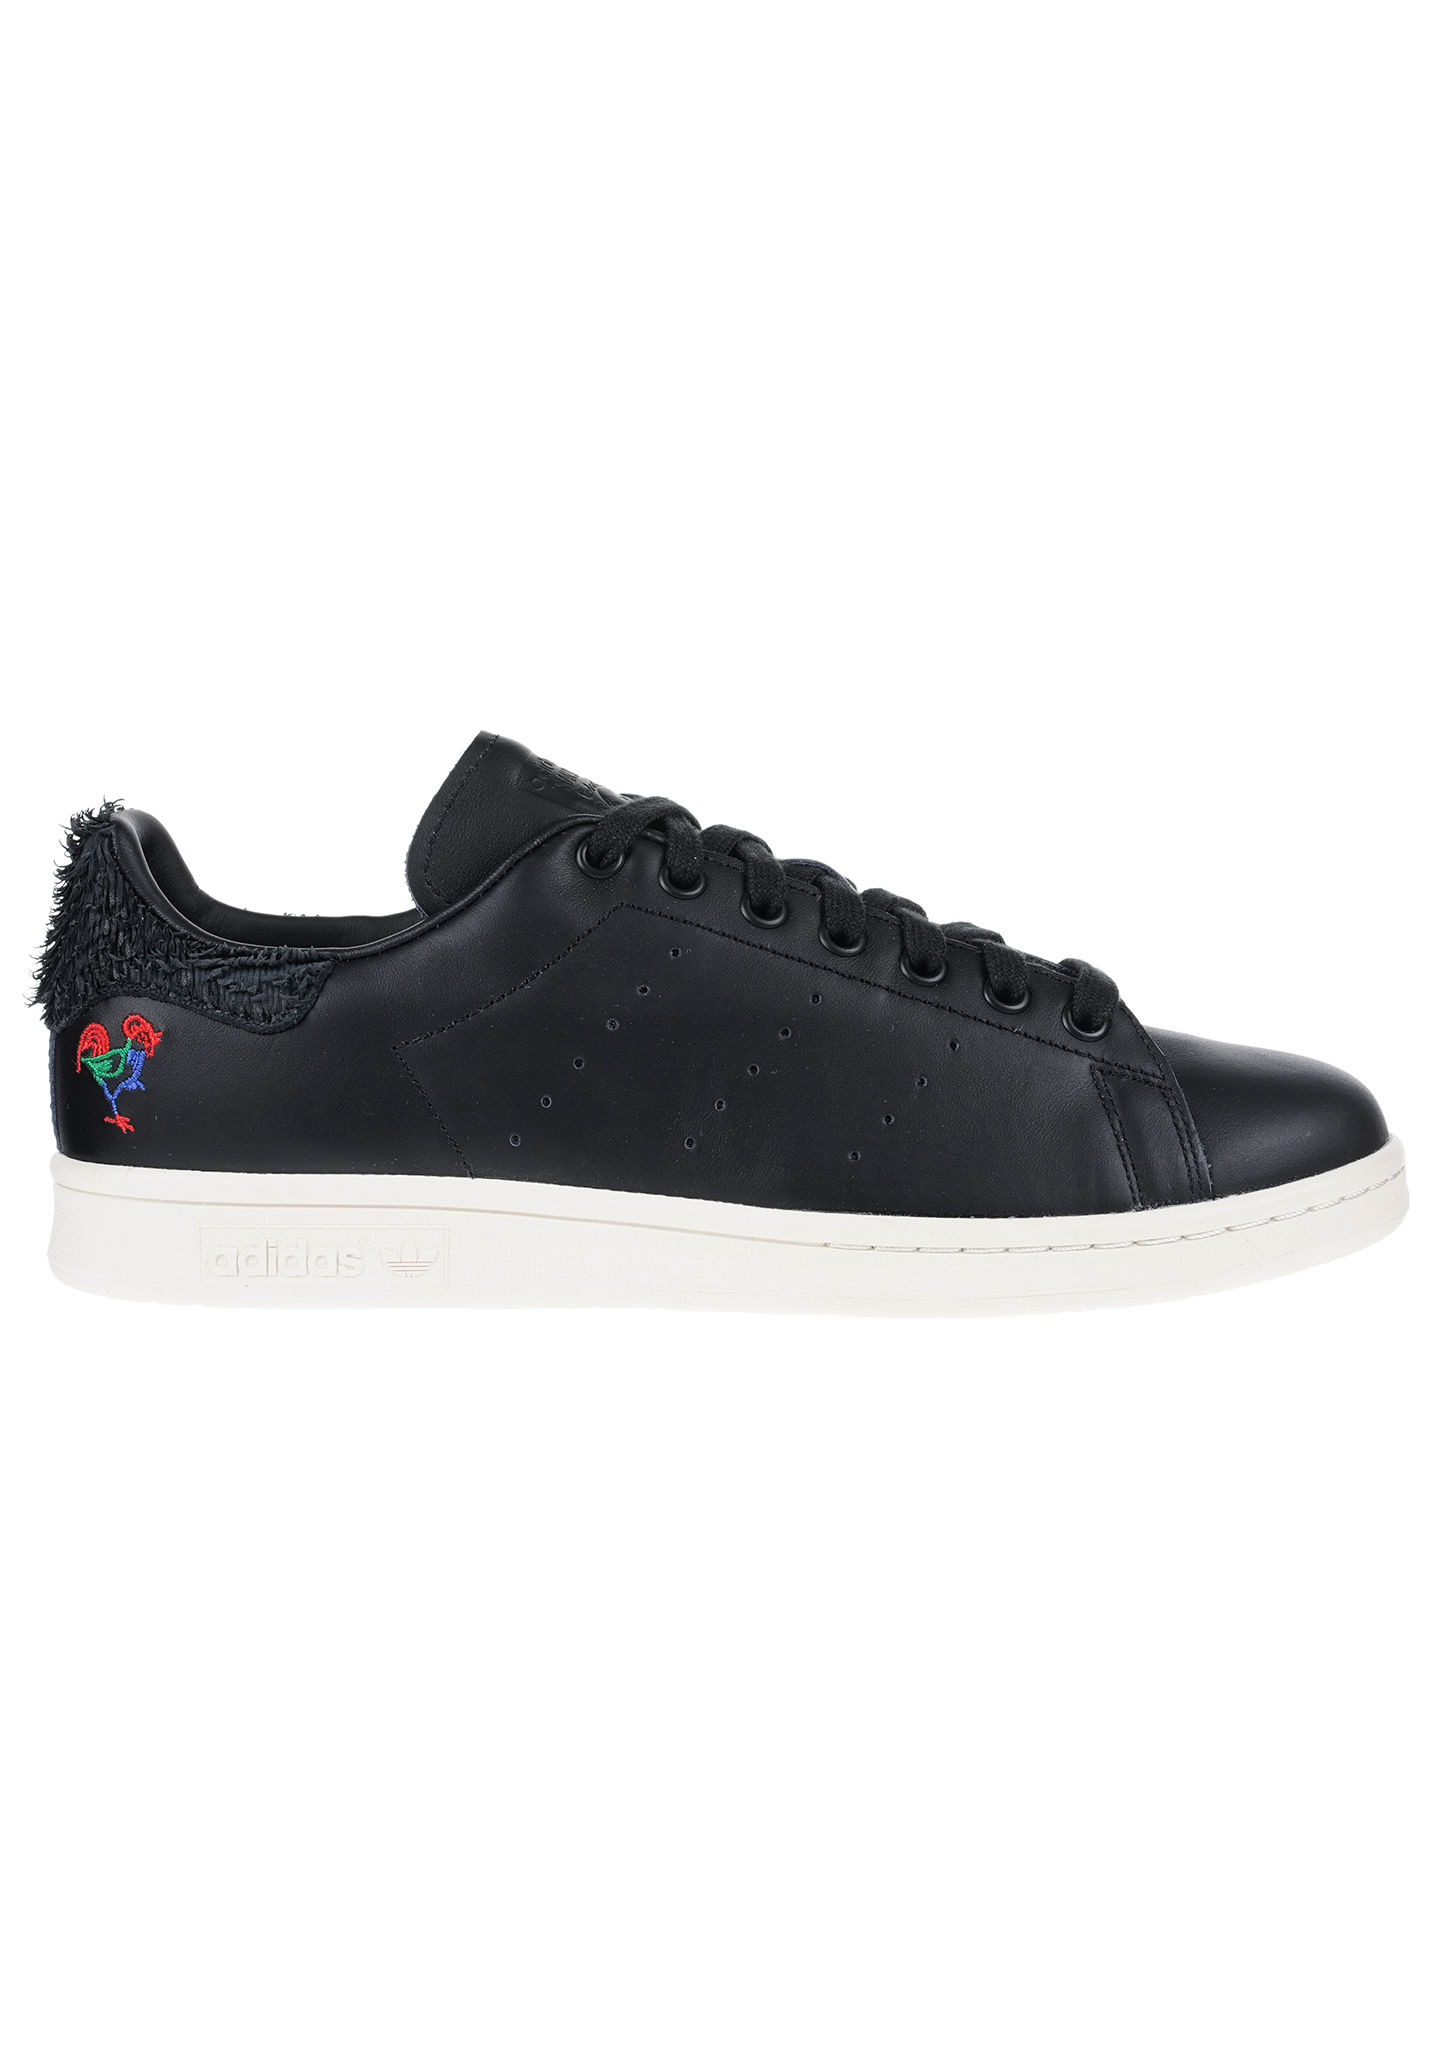 Adidas Stan Smith CNY - Baskets pour Homme - Noir